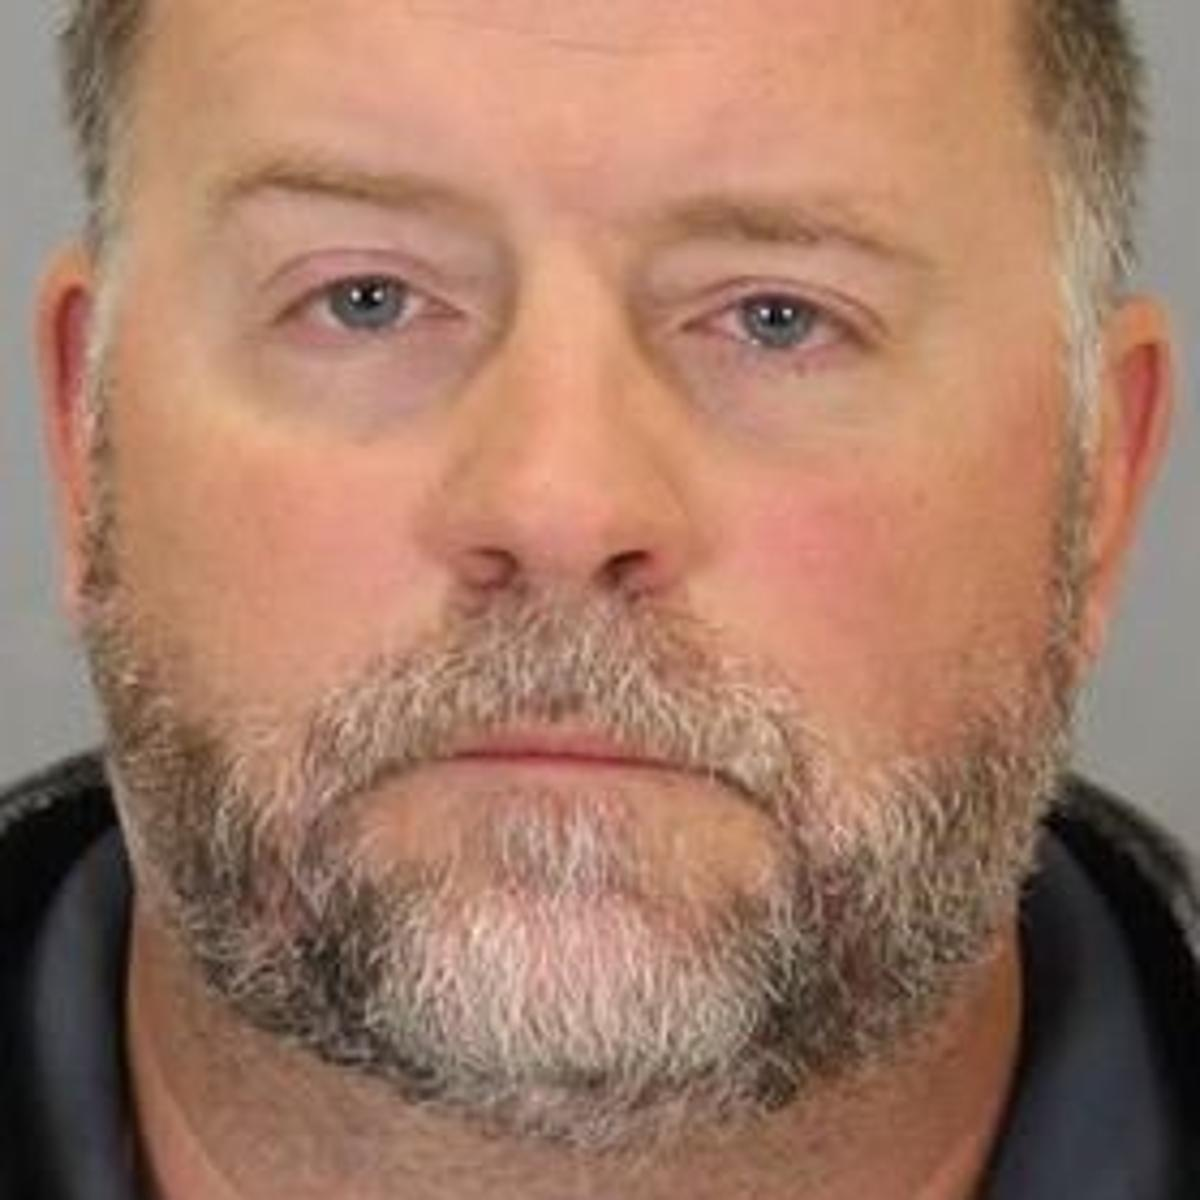 Ex-teacher, coach sentenced to 25-30 years in prison after